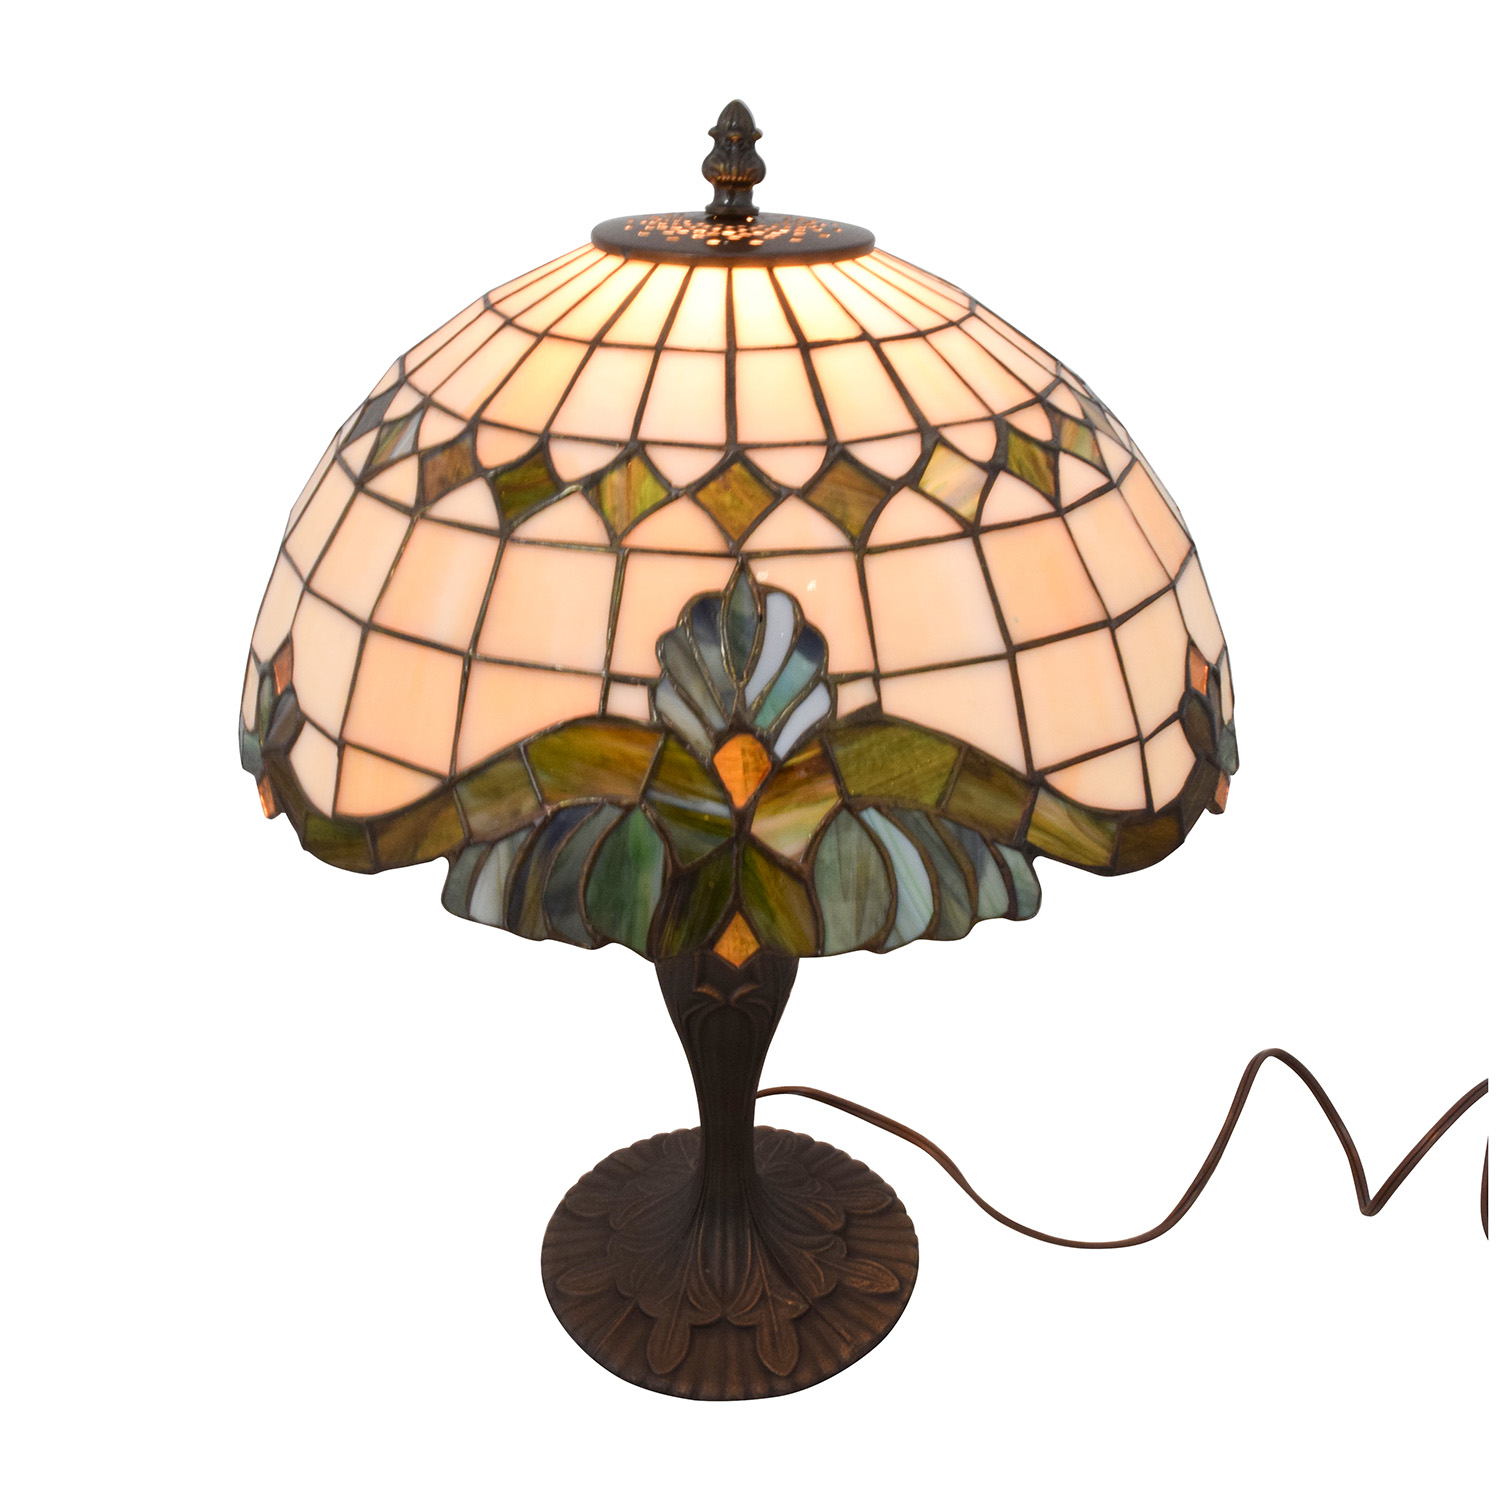 Tiffany Style Lamp with Stained Glass and Metal Neutral Tone